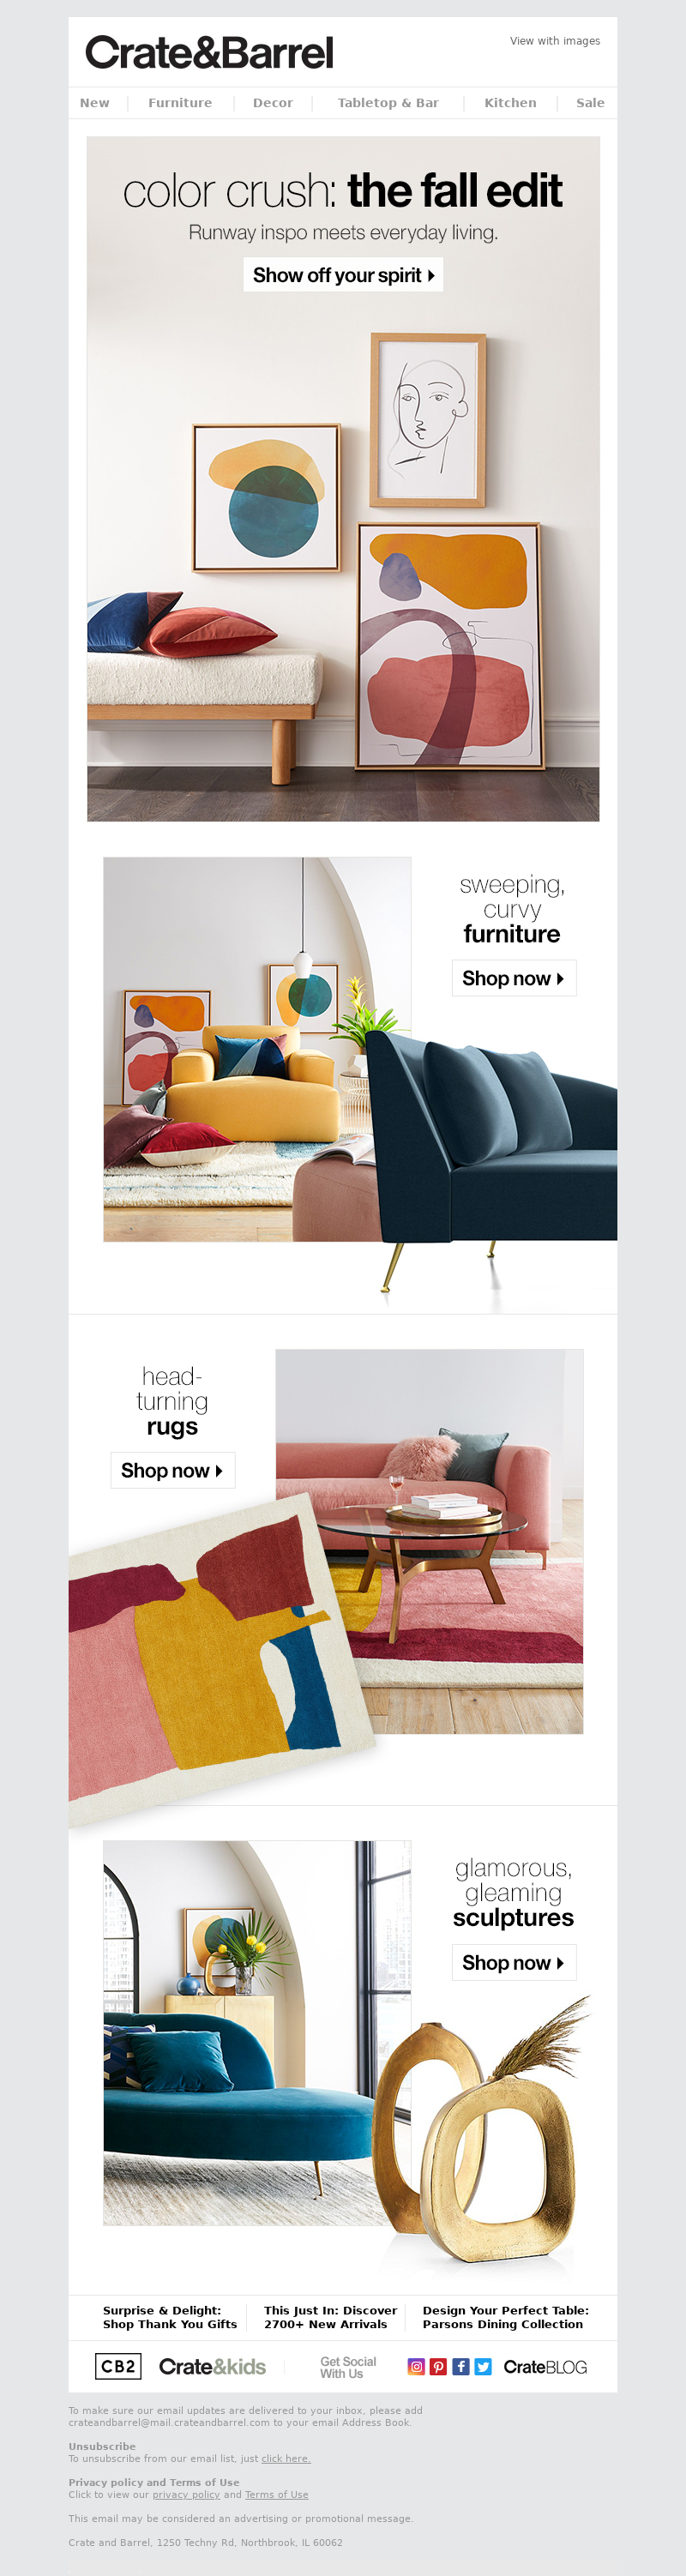 Crate and Barrel - The Fall Edit: GO BOLD.